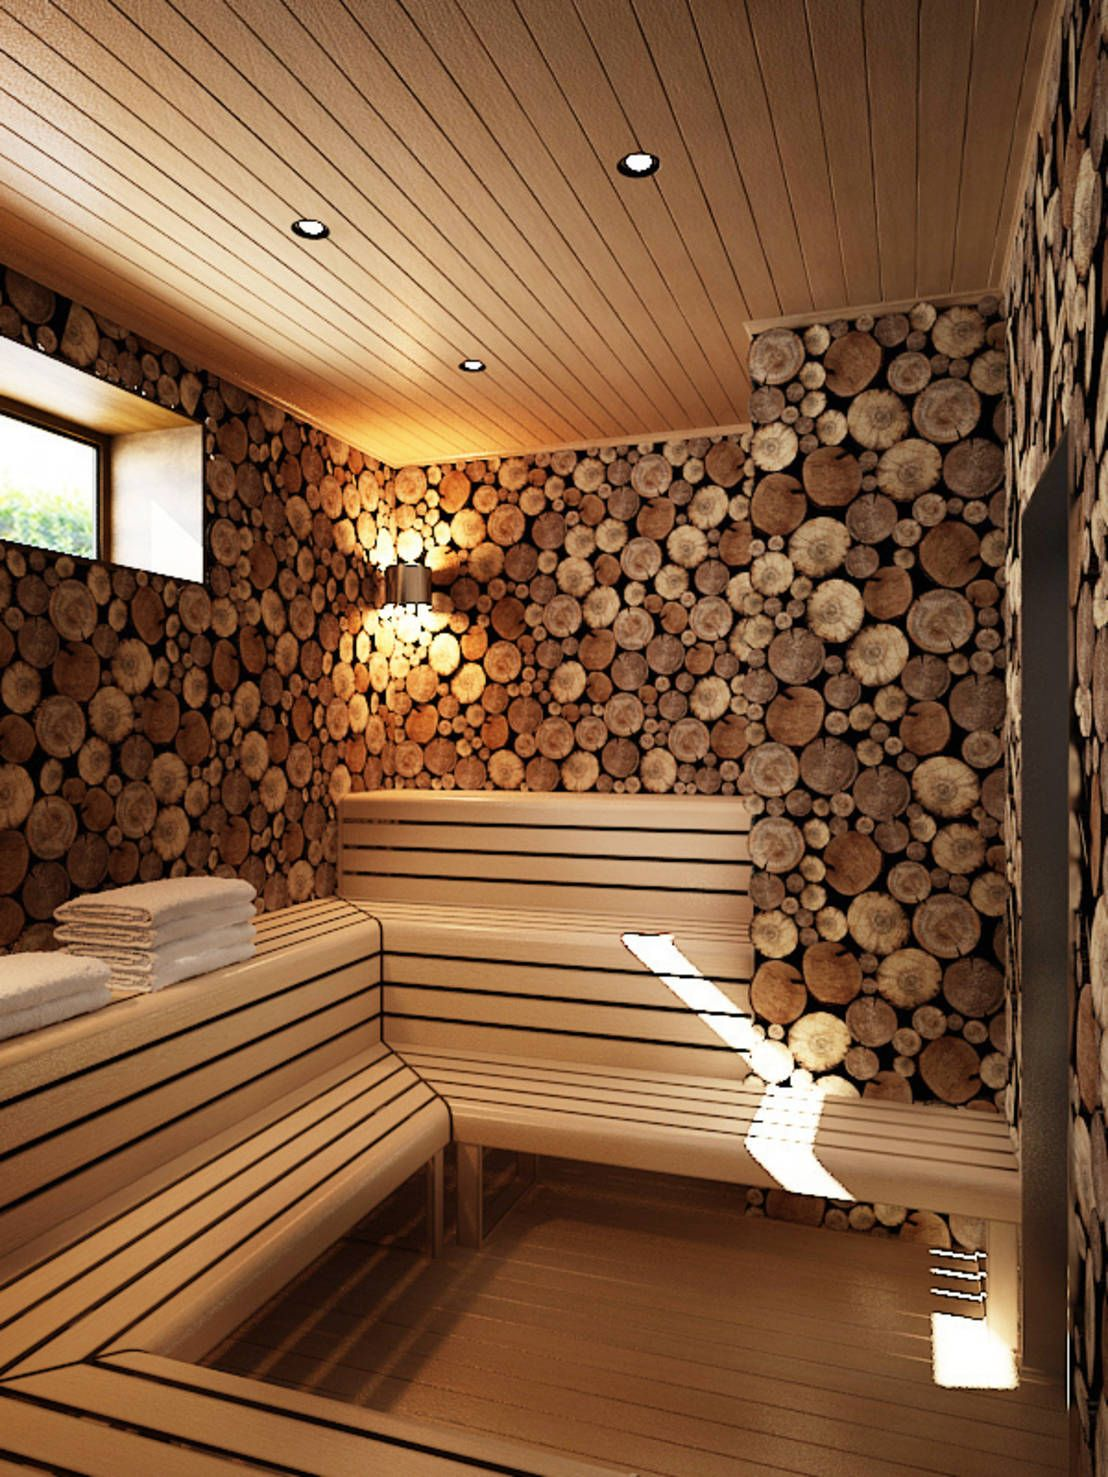 7 sauna sauna badezimmer und haus. Black Bedroom Furniture Sets. Home Design Ideas